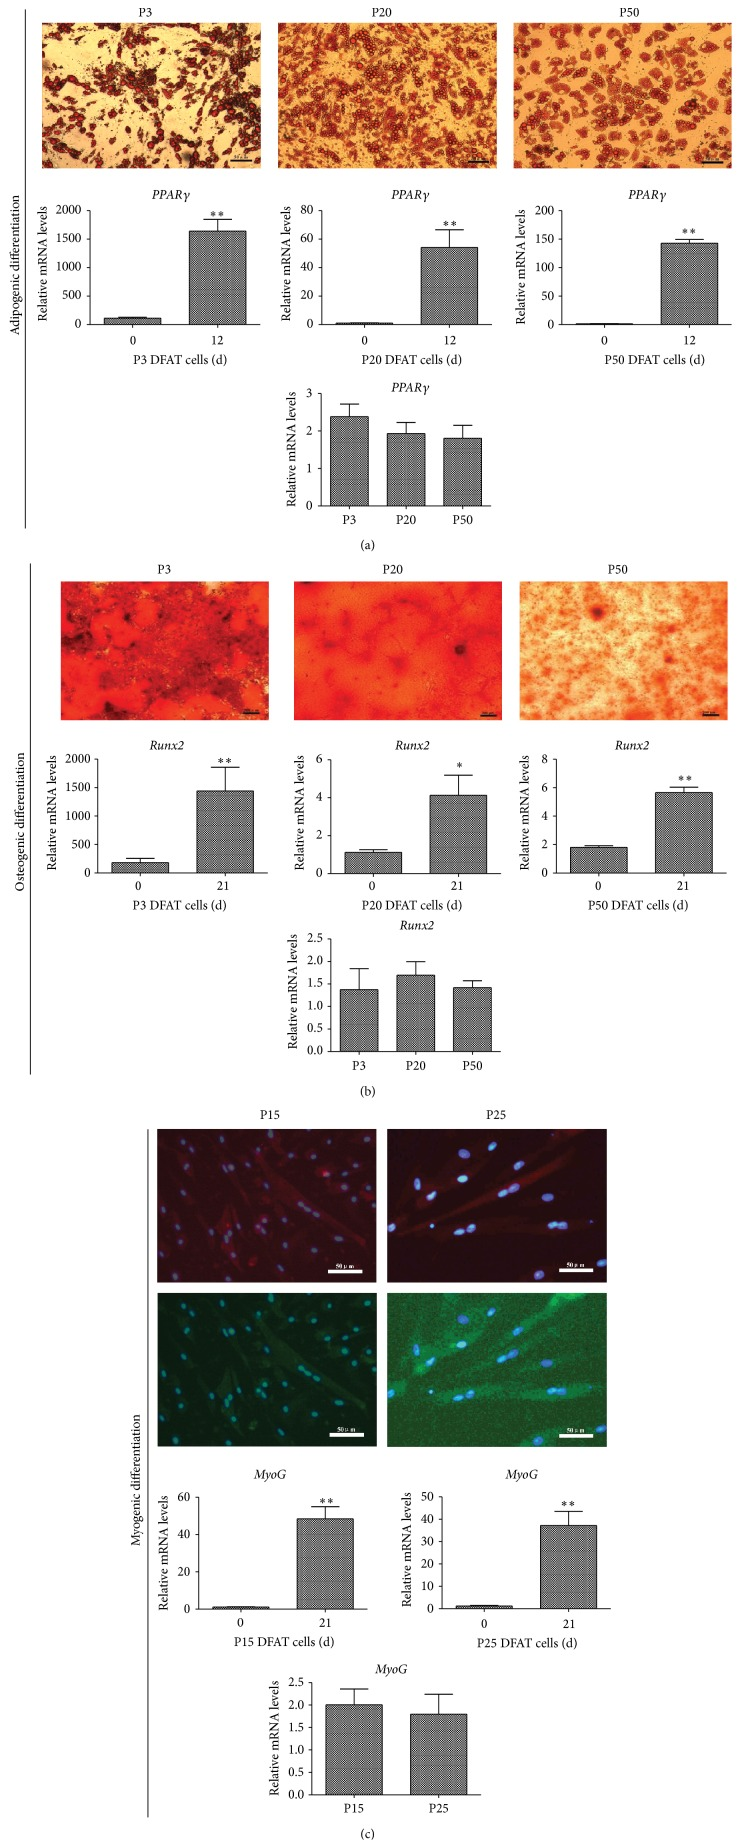 Multilineage differentiation of porcine DFAT cells. (a) Adipogenic differentiation of DFAT cells at P3, P20, and P50 was induced by MDI (high-glucose DMEM containing 10% FBS, 1 μ M dexamethasone, 500 μ M isobutylmethylxanthine (IBMX), 10 μ g/mL insulin, and 200 μ M indomethacin) for 12 days. Lipid droplets were stained by Oil Red O, bar, 50 μ m. Expression of PPARγ mRNA was assessed by real-time PCR. (b) Osteogenic differentiation of DFAT cells at P3, P20, and P50 was induced by induction medium (high-glucose DMEM containing 10% FBS, 0.1 μ M dexamethasone, 10 mM β -glycerophosphate, and 50 mM ascorbic acid) for 21 days, bar, 200 μ m. Expression of Runx2 mRNA was assessed by real-time PCR. (c) Myogenic differentiation of DFAT cells at P15 and P25 was induced by Galectin-1 for 21 days, expression of myogenic markers was confirmed by immunofluorescence analysis for Desmin and MyHC, and the nuclei were stained by DAPI. Images were merged by Desmin (red) and MyHC (green) with DAPI (blue), bar, 50 μ m. Expression of MyoG mRNA was assessed by real-time PCR. All values are represented as mean ± SD from three independent experiments. ∗ p